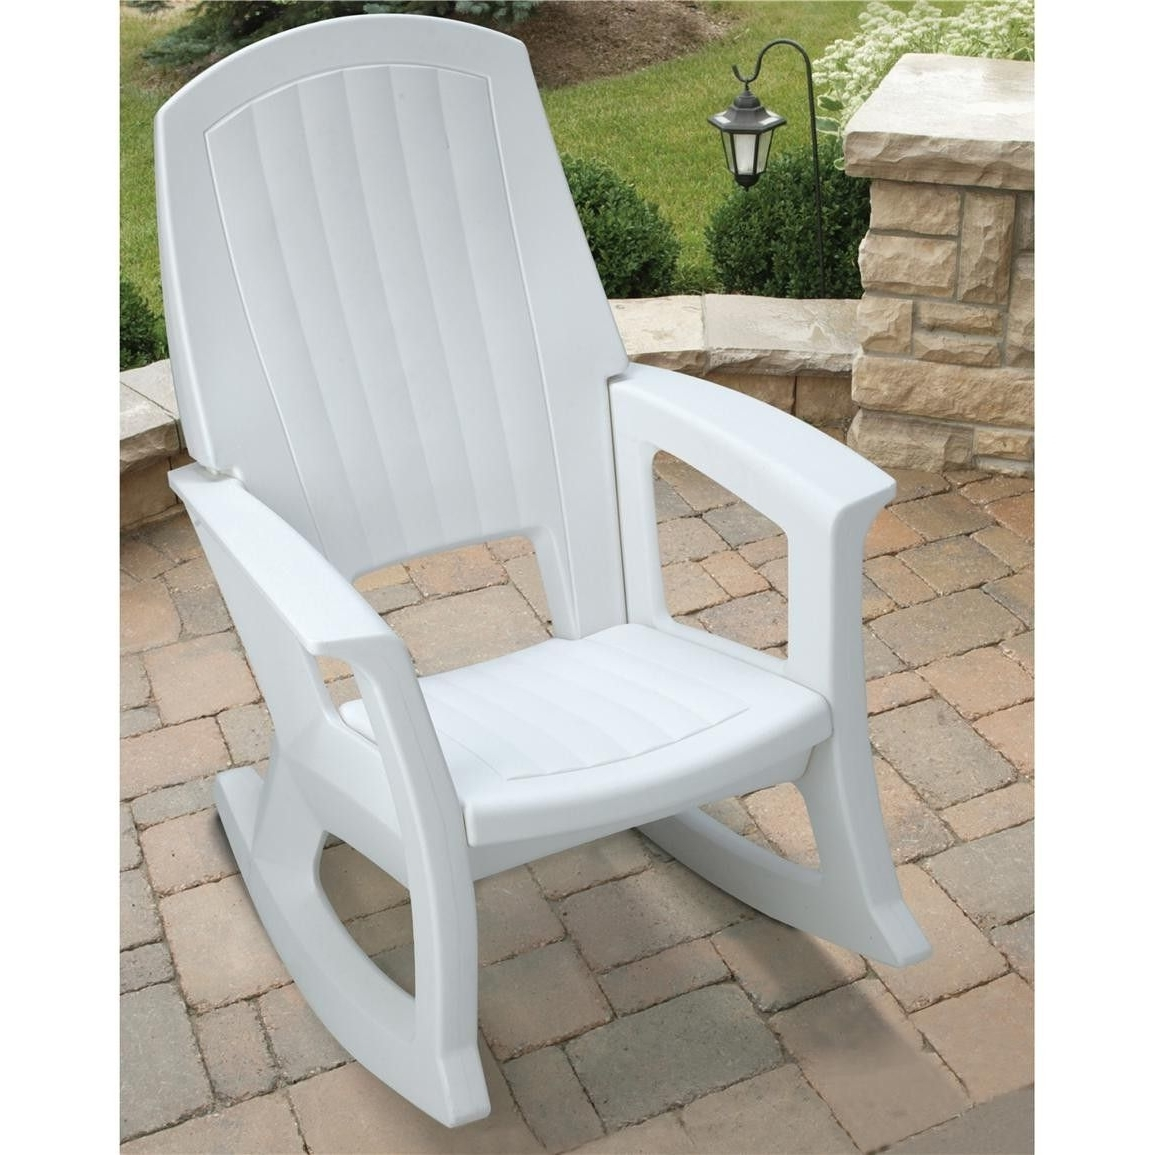 Recent Semco Plastics White Resin Outdoor Patio Rocking Chair Semw : Rural Pertaining To Resin Wicker Patio Rocking Chairs (View 8 of 15)